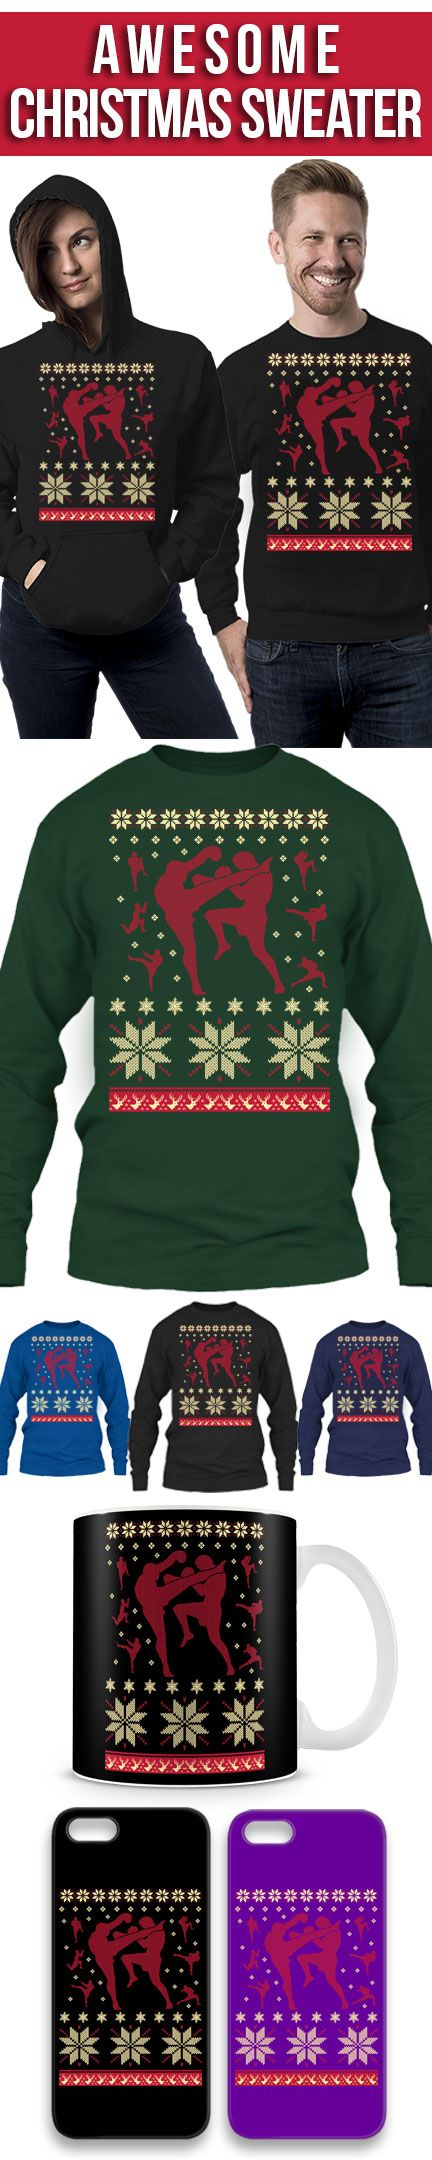 Muay Thai Ugly Christmas Sweater! Click The Image To Buy It Now or Tag Someone You Want To Buy This For. muaythai